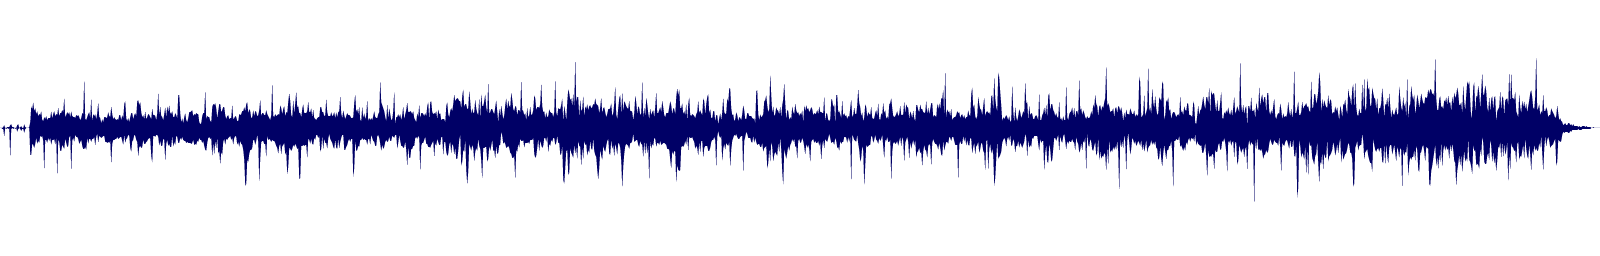 waveform of track #101073